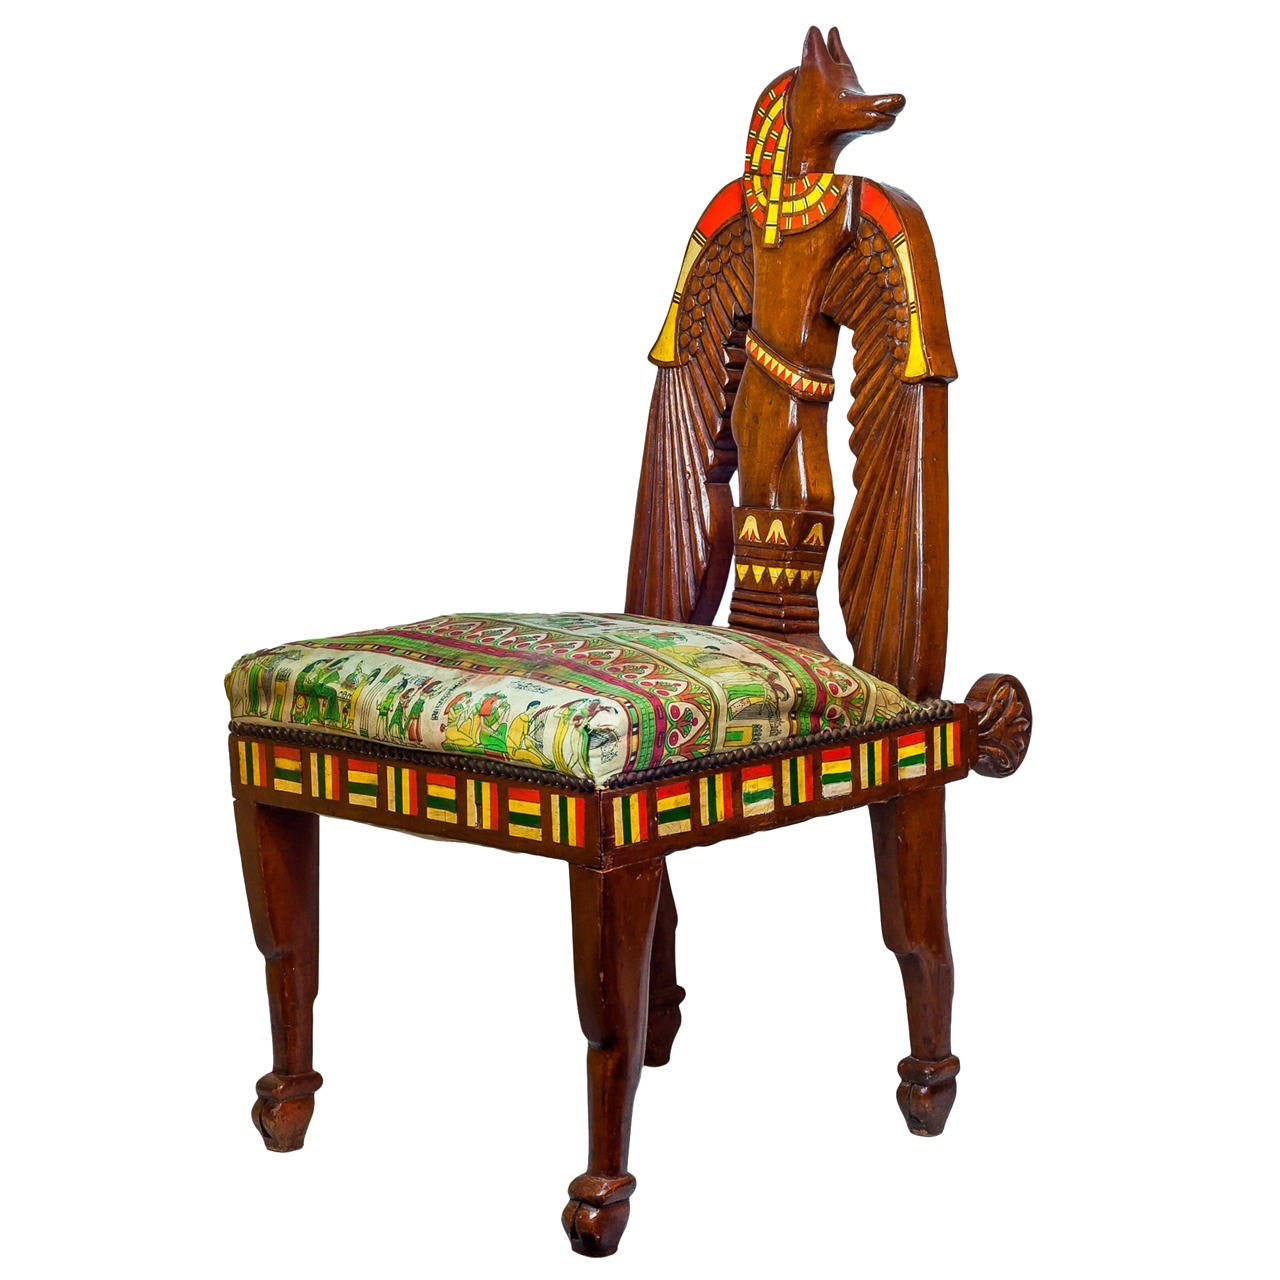 Unusual Furniture For Sale: Unusual Egyptian Revival Inlaid Figural Side Chair For